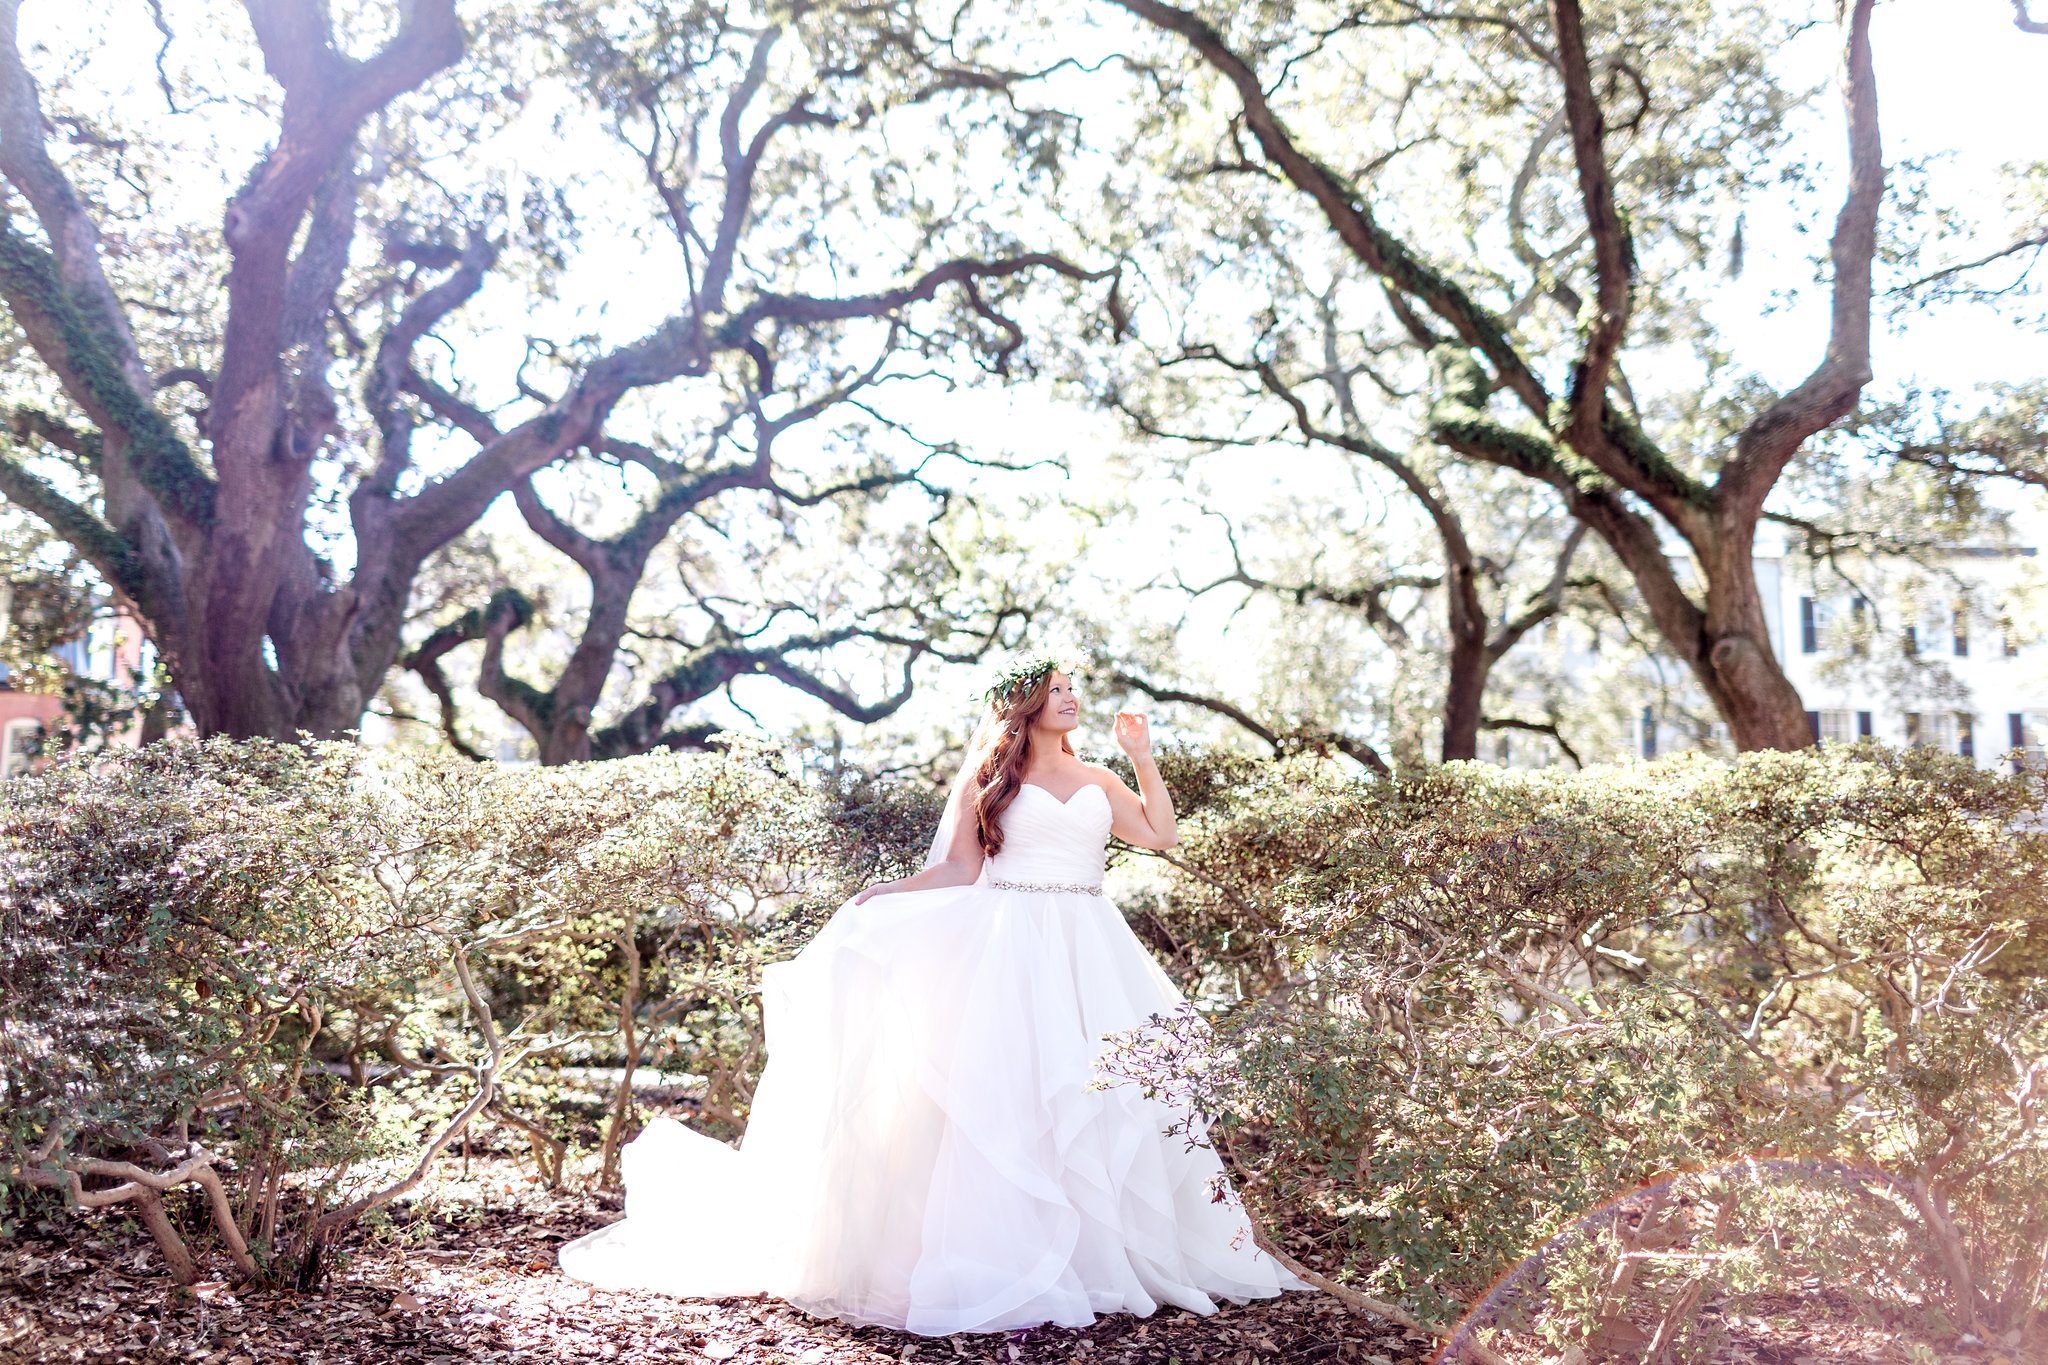 apt-b-photography-mary-elizabeths-bridal-boutique-adele-amelia-accessories-morilee-5504-savannah-bridal-boutique-savannah-weddings-savannah-wedding-photographer-savannah-bridal-gowns-savannah-wedding-dresses-historic-savannah-wedding-11.jpg